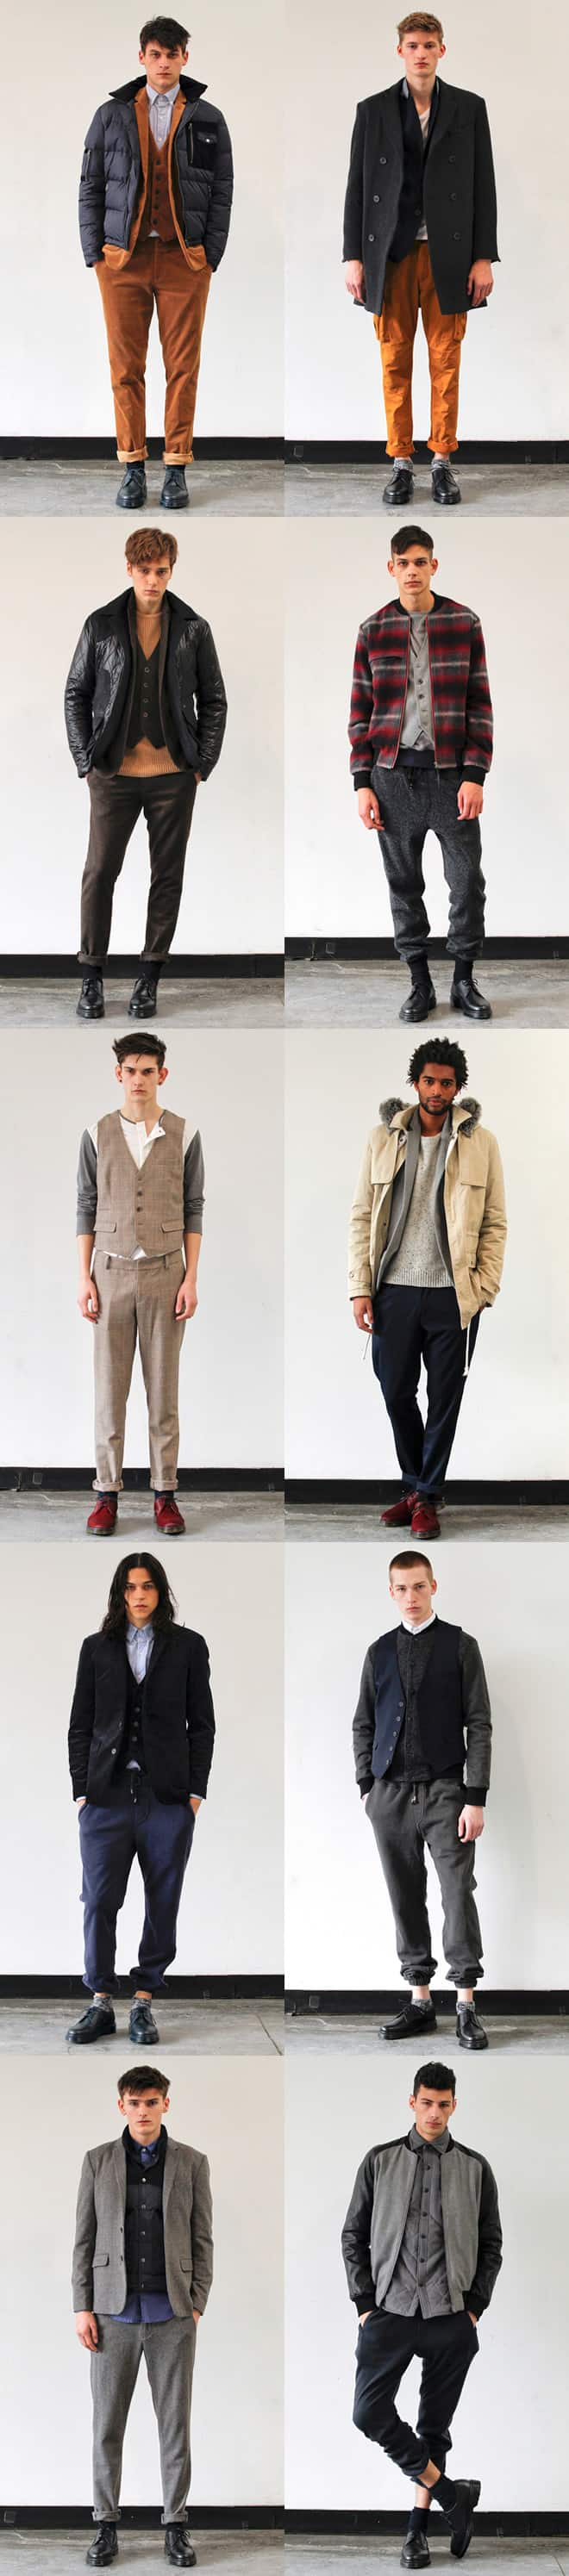 Shades Of Grey AW12 Collection